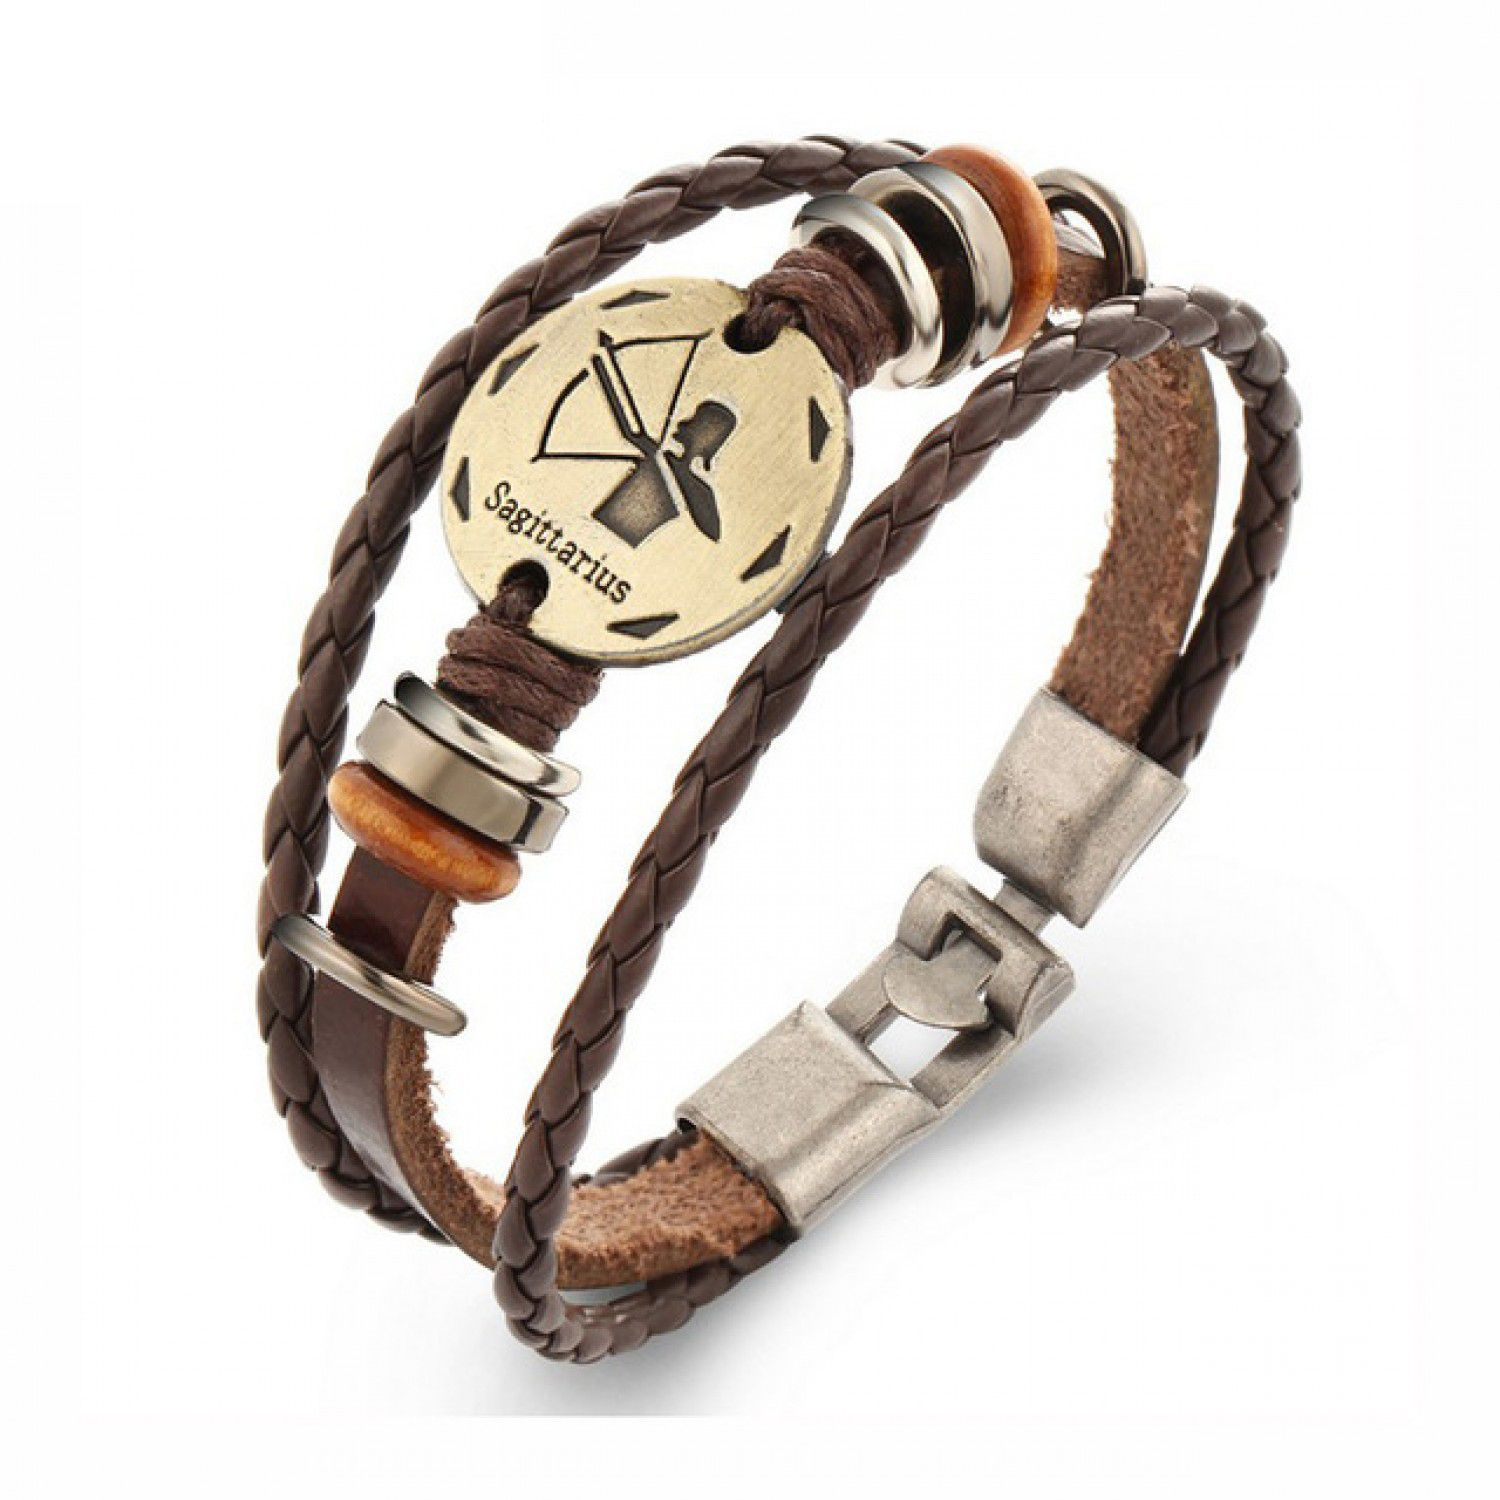 Pc constellations bracelets fashion jewelry leather bracelets